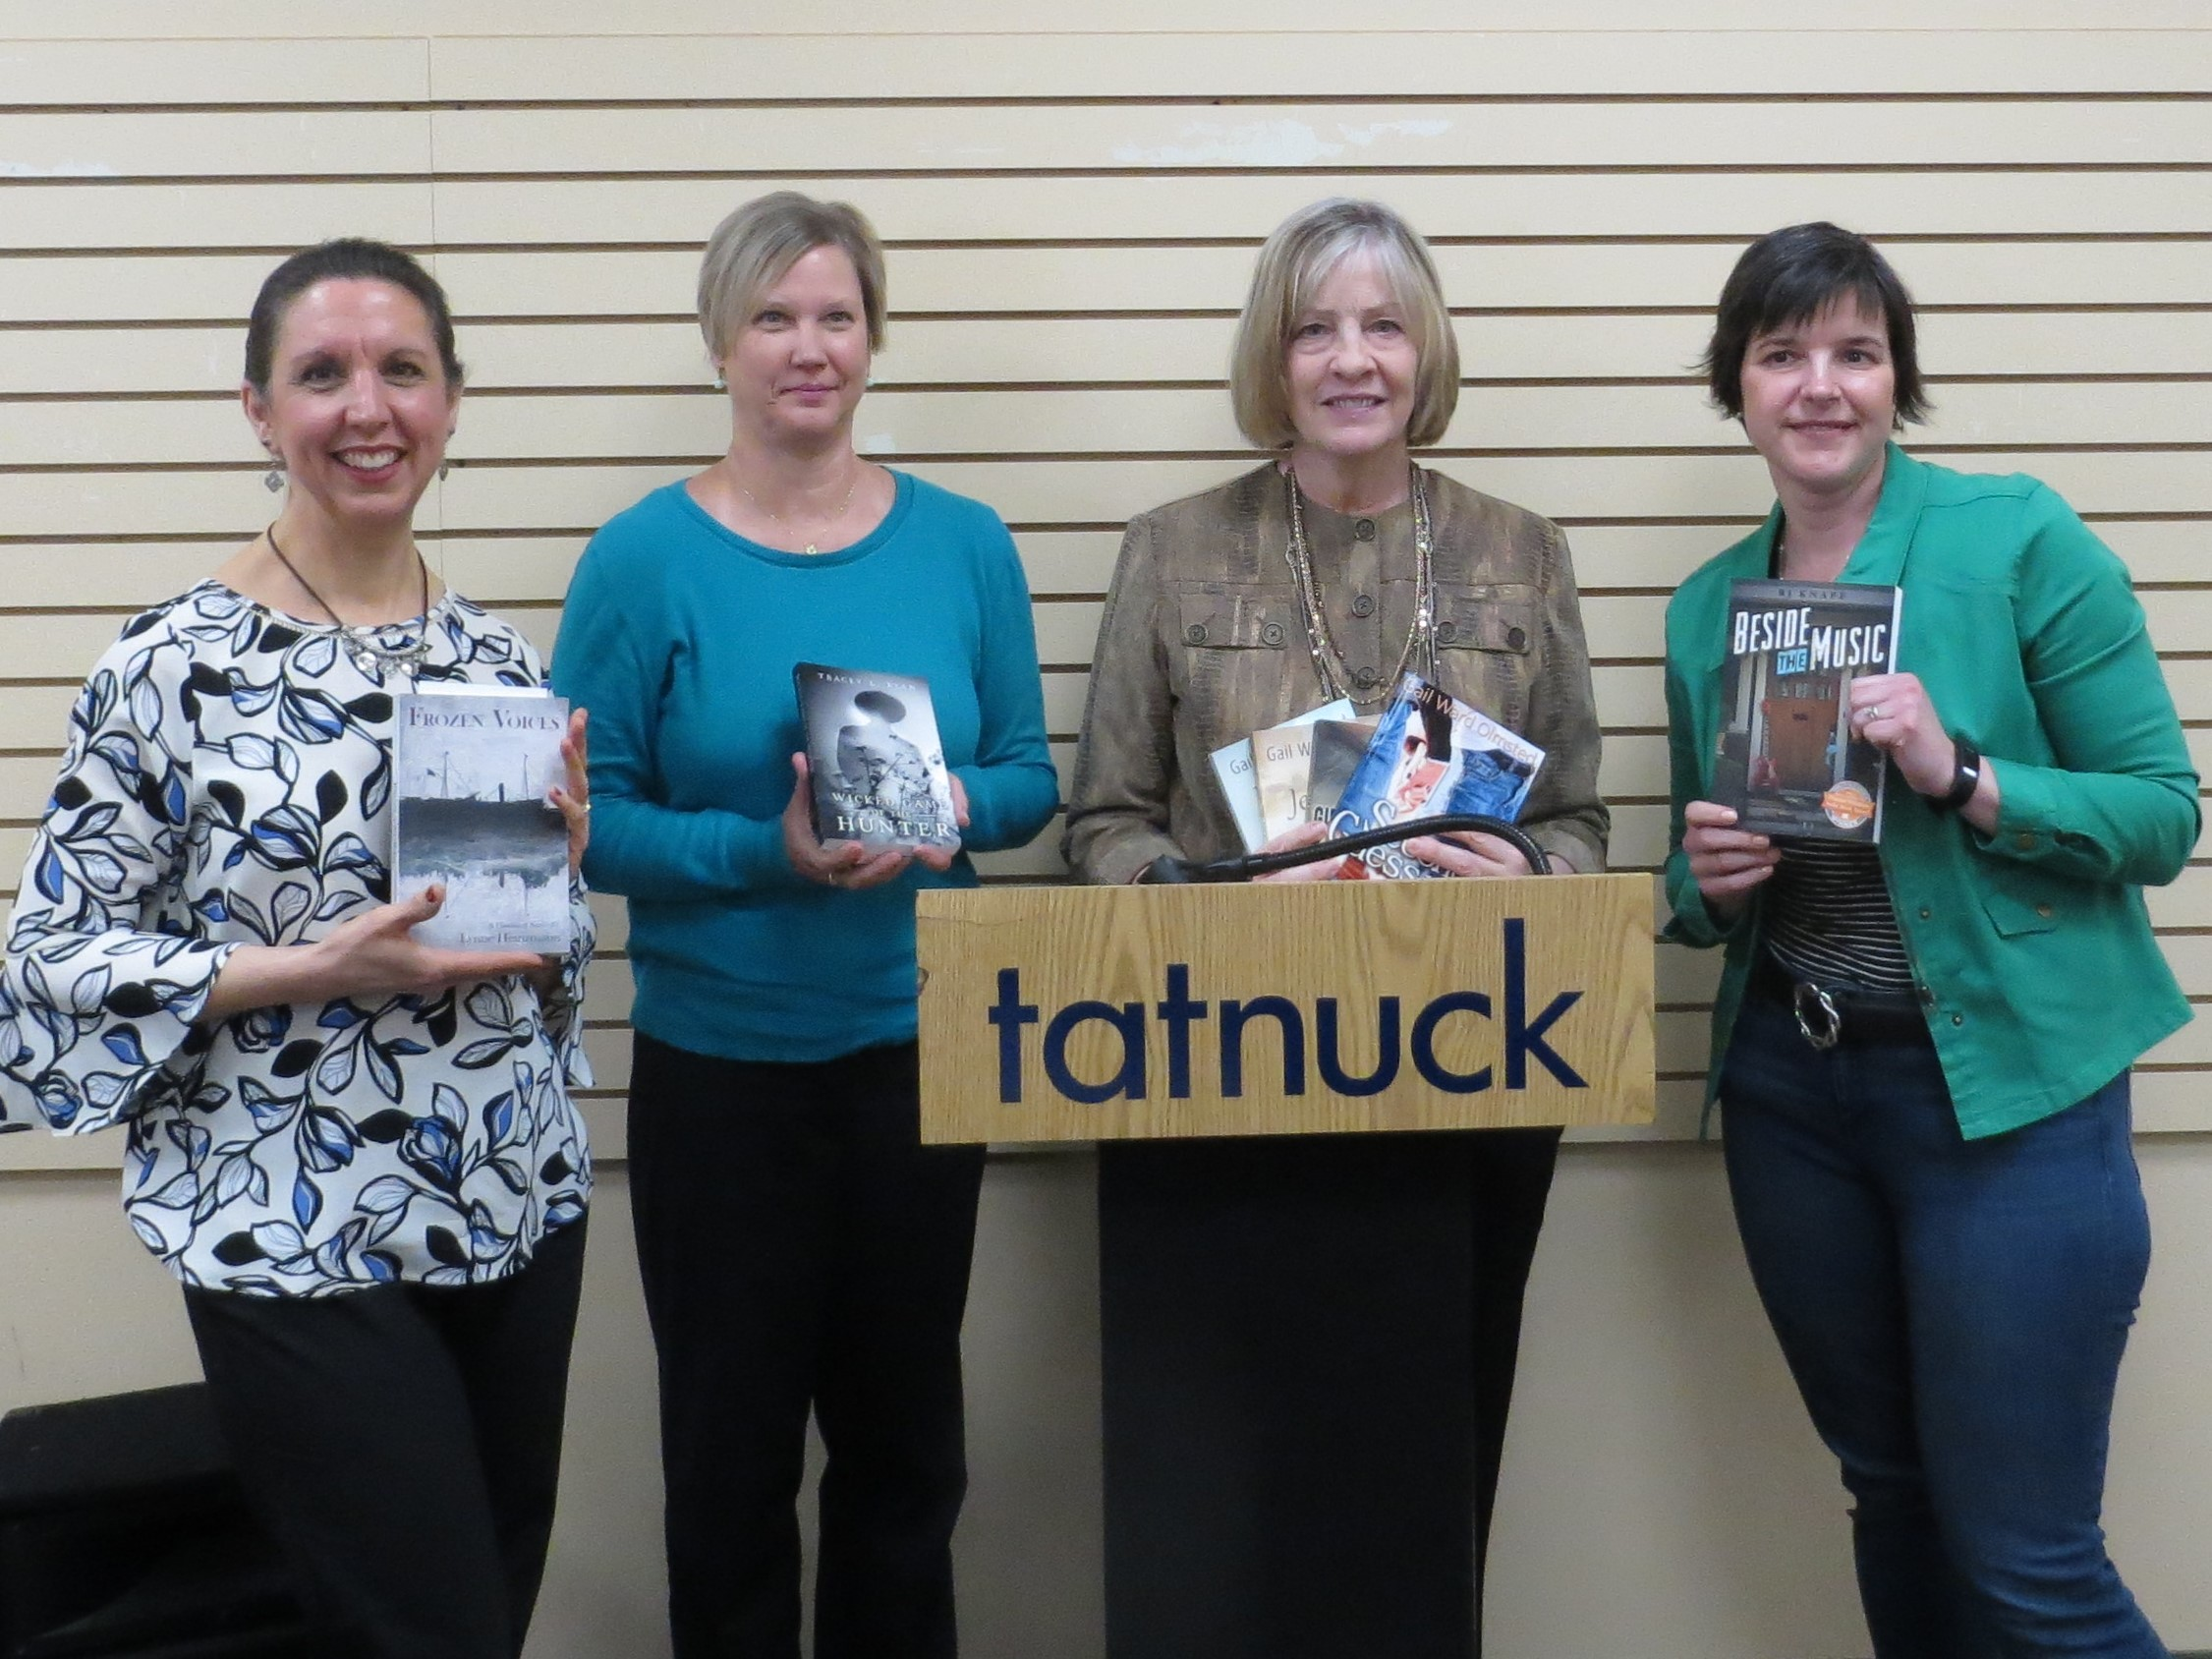 Me, Tracey, Gail, BJ, and our books!